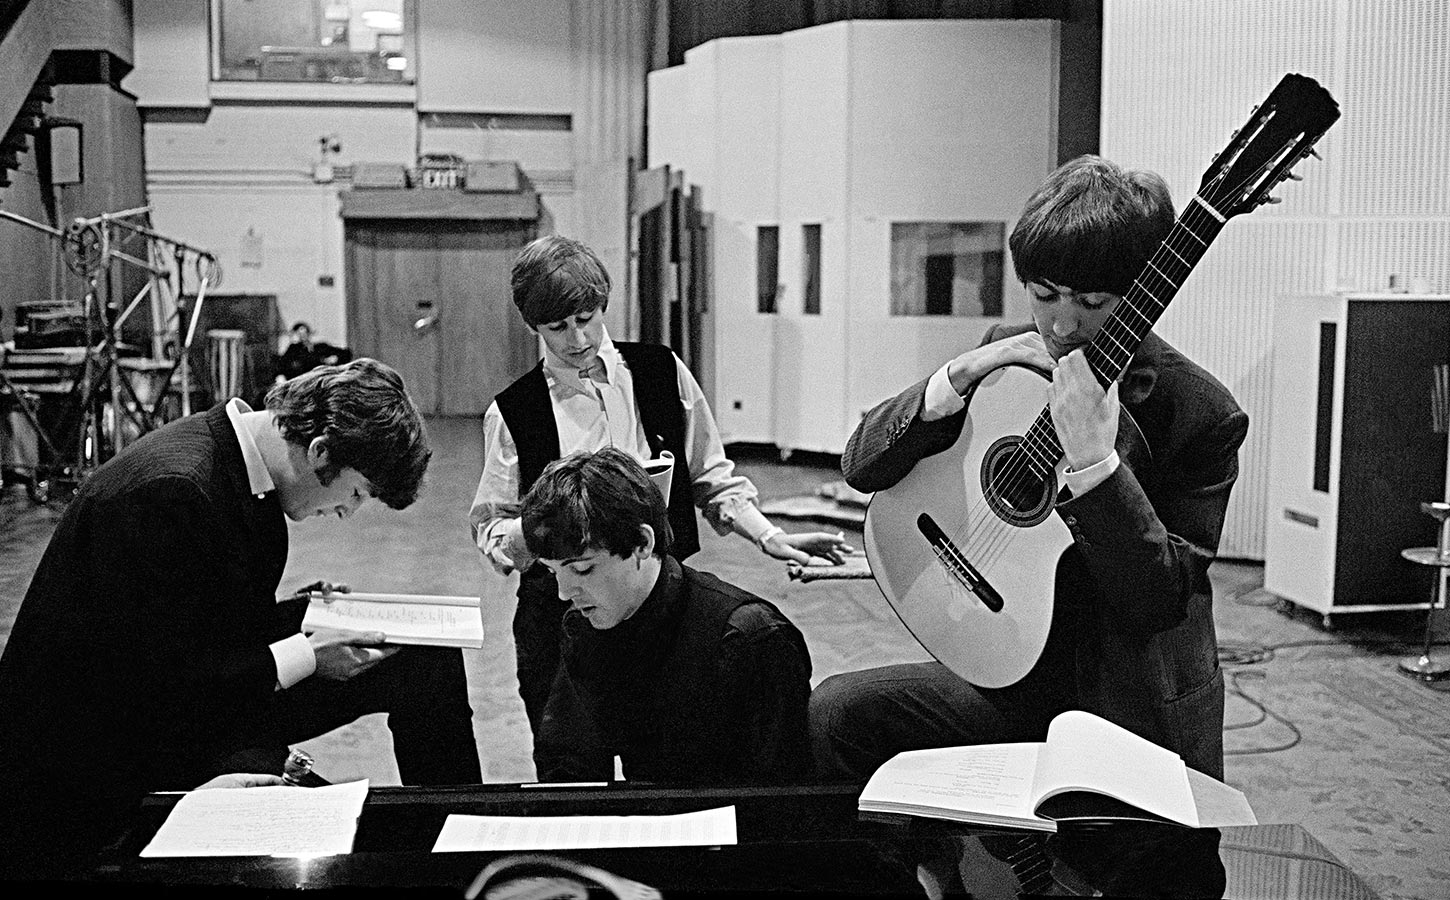 The Beatles in EMI (later Abbey Road) Studios. London, England. 1964.